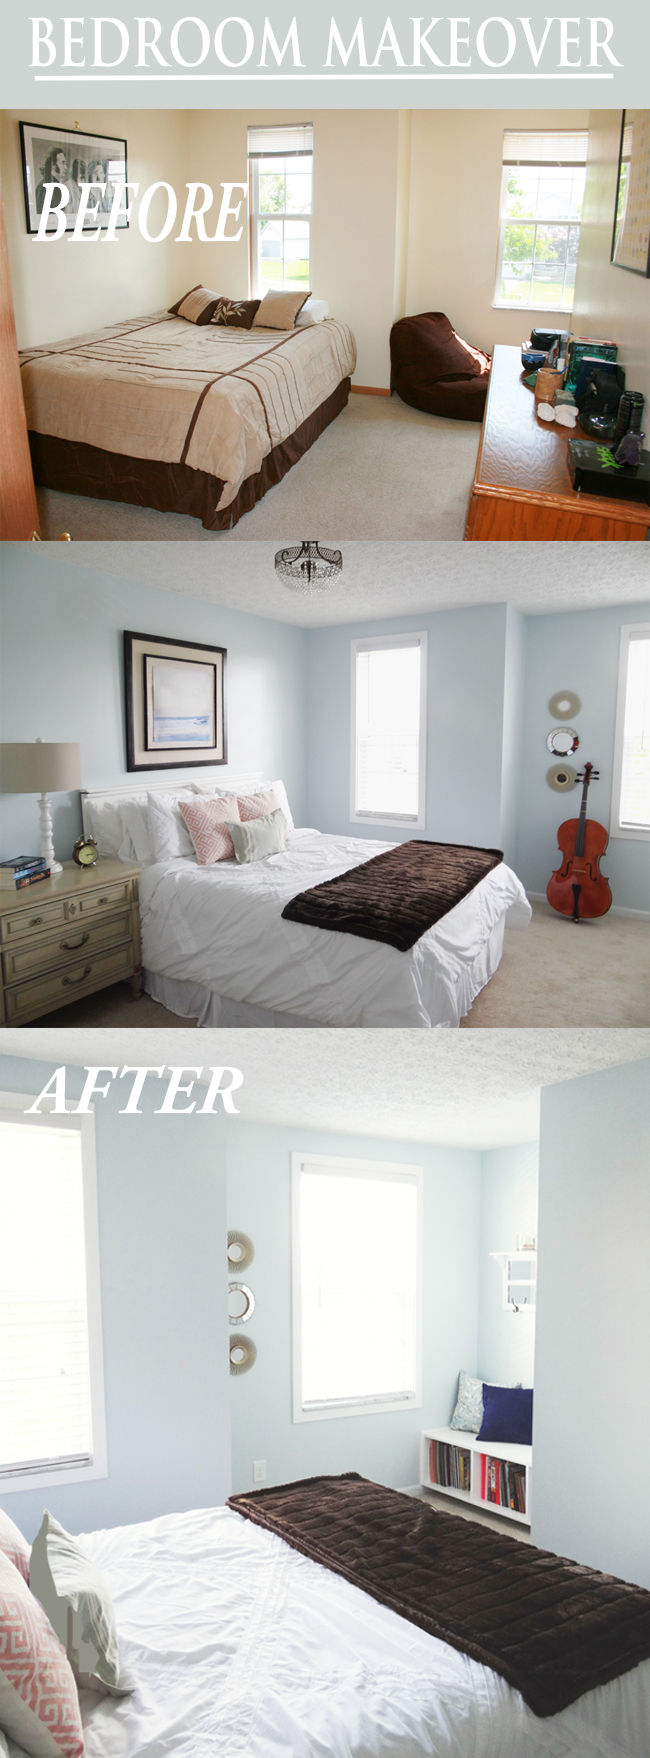 A Beautiful Bedroom Makeover for Zoe - Provident Home Design